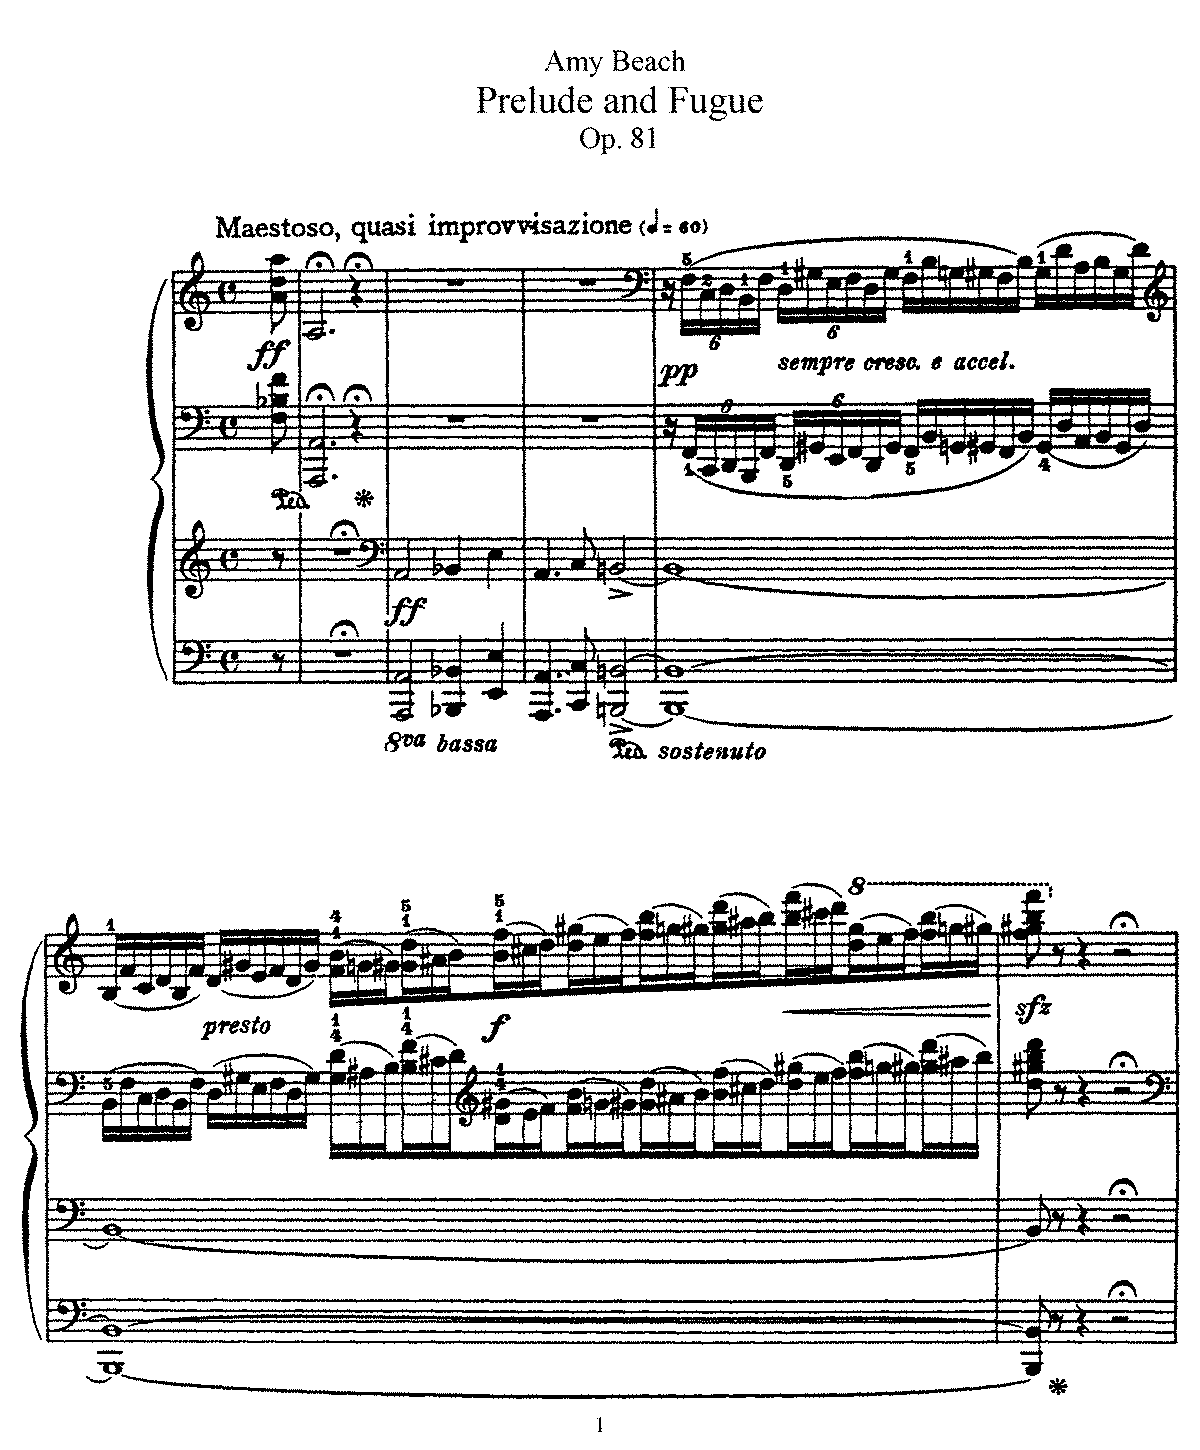 Beach - Op.81 - Prelude and Fugue.pdf